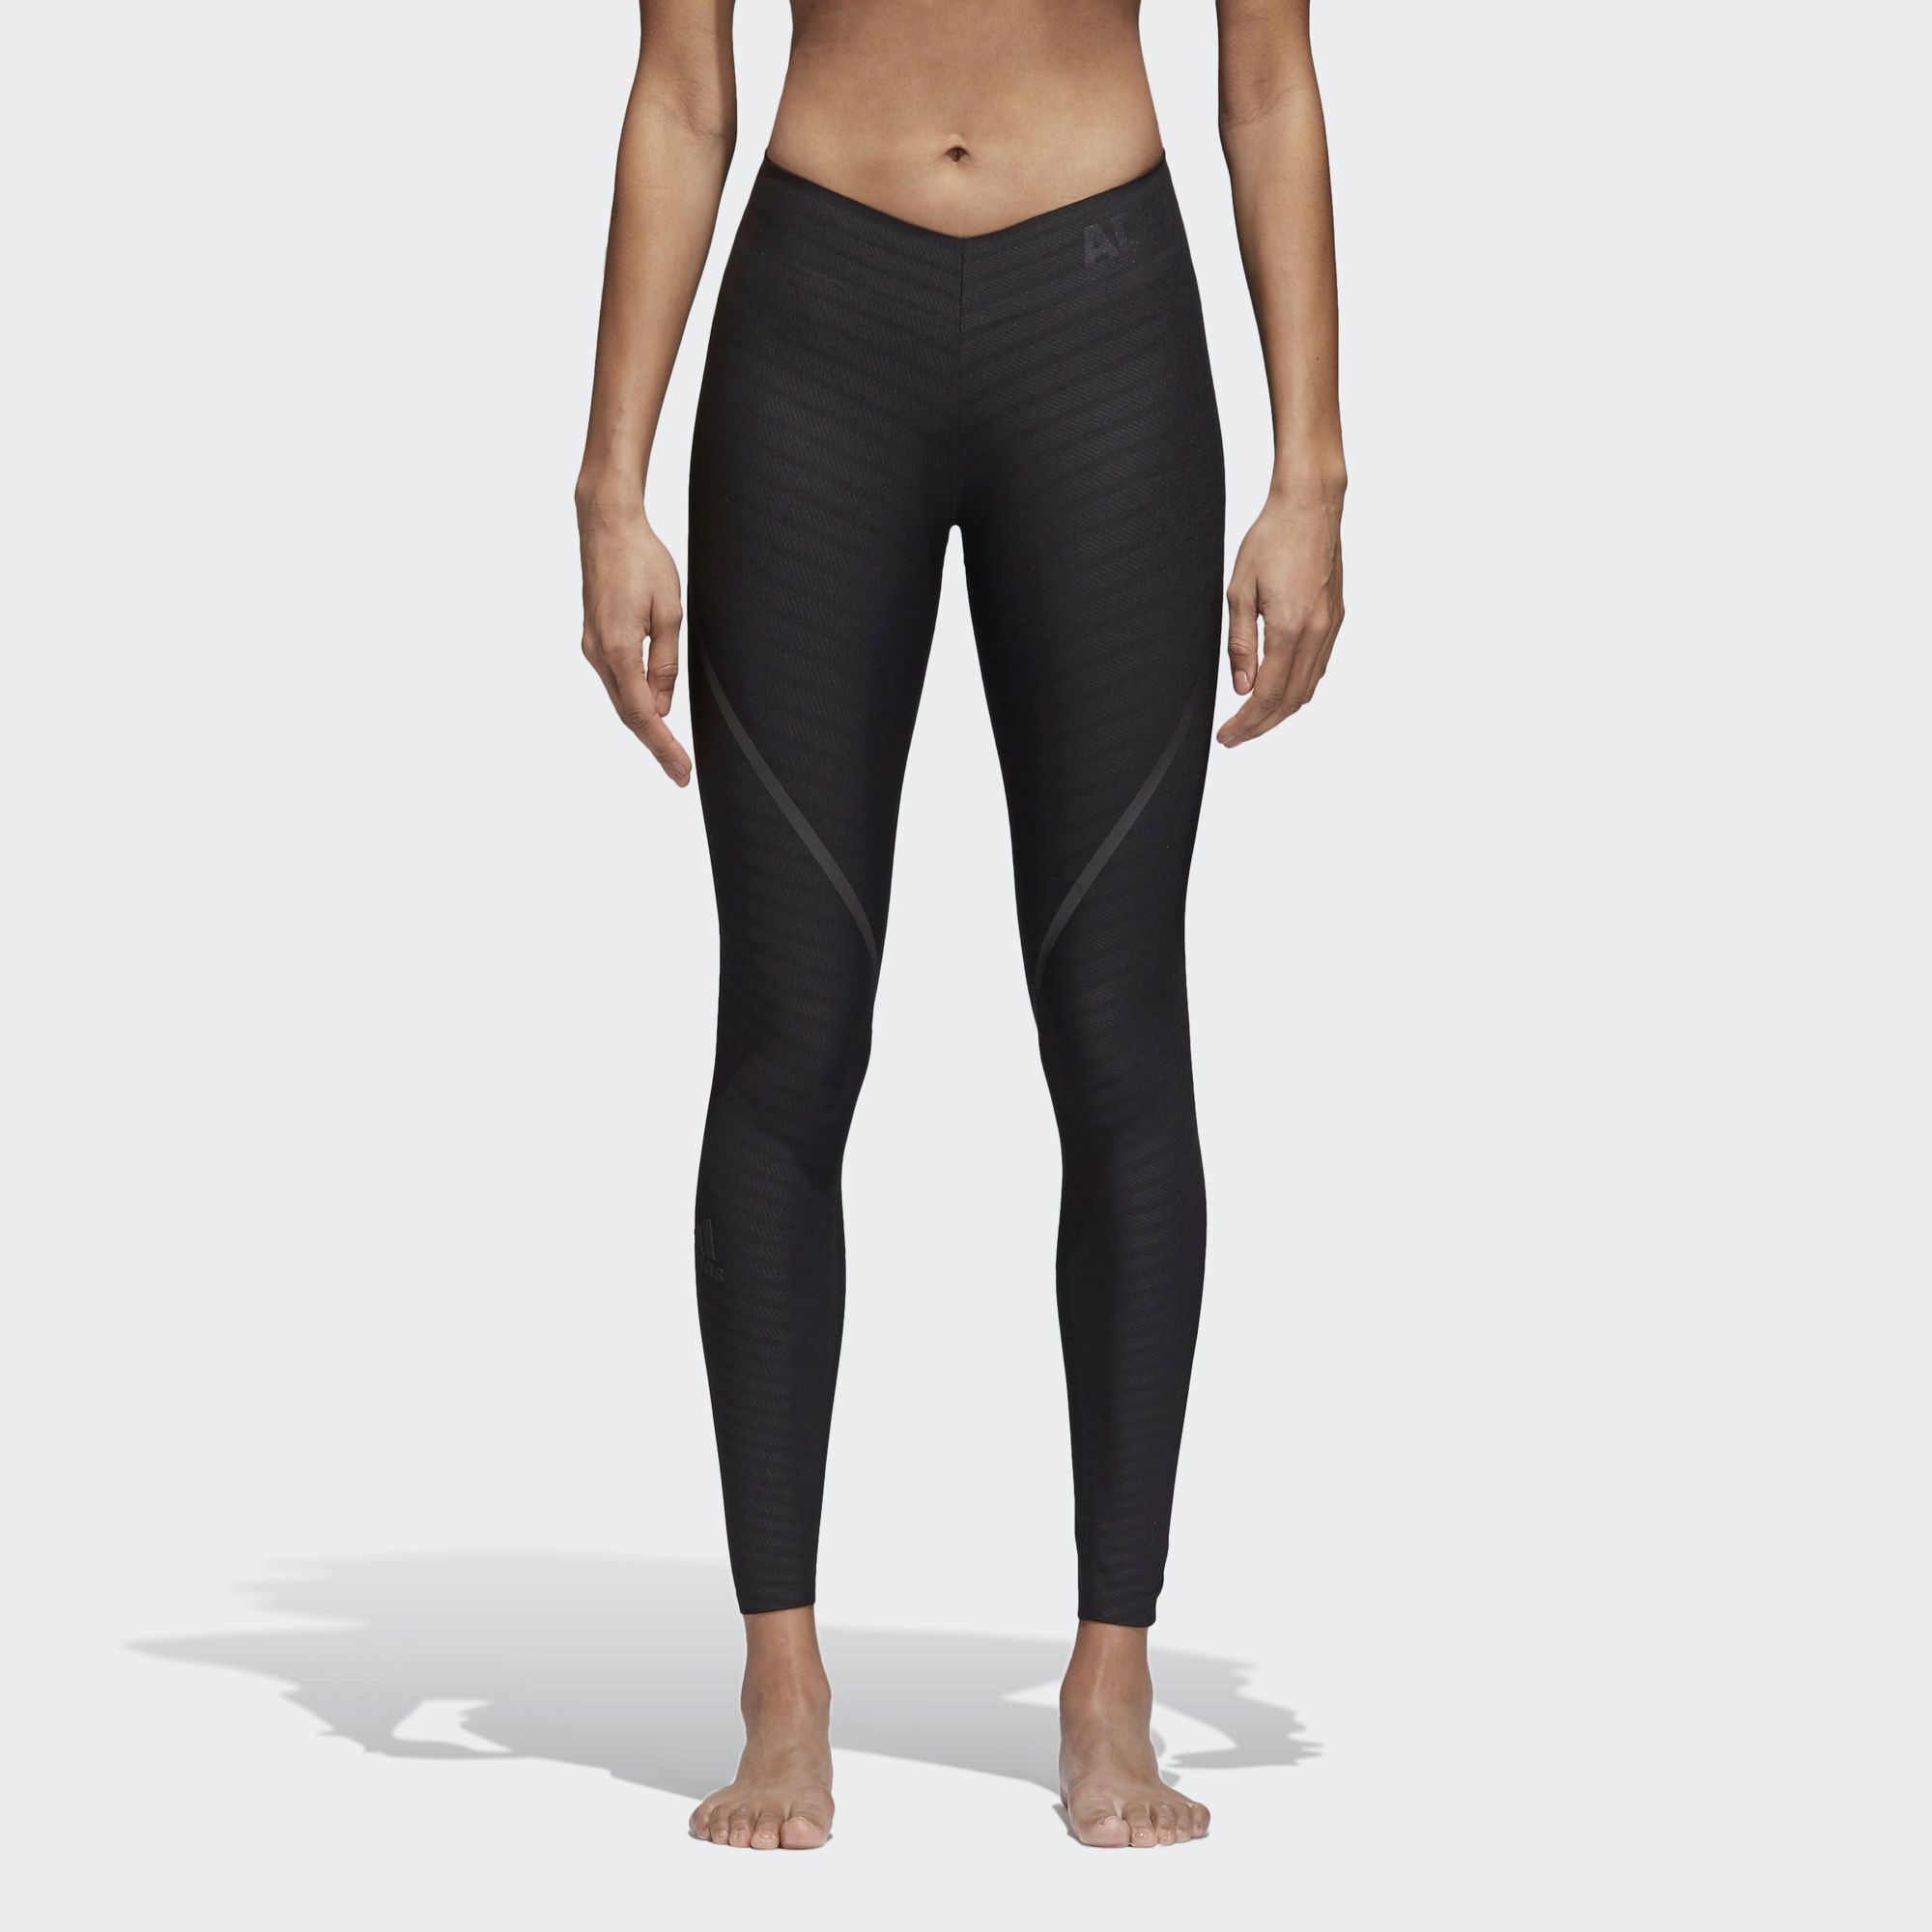 9d1781899317 These women s body-hugging training tights are built to provide easy motion  at the gym or in the great outdoors. They re made of mesh-like Climachill  that ...